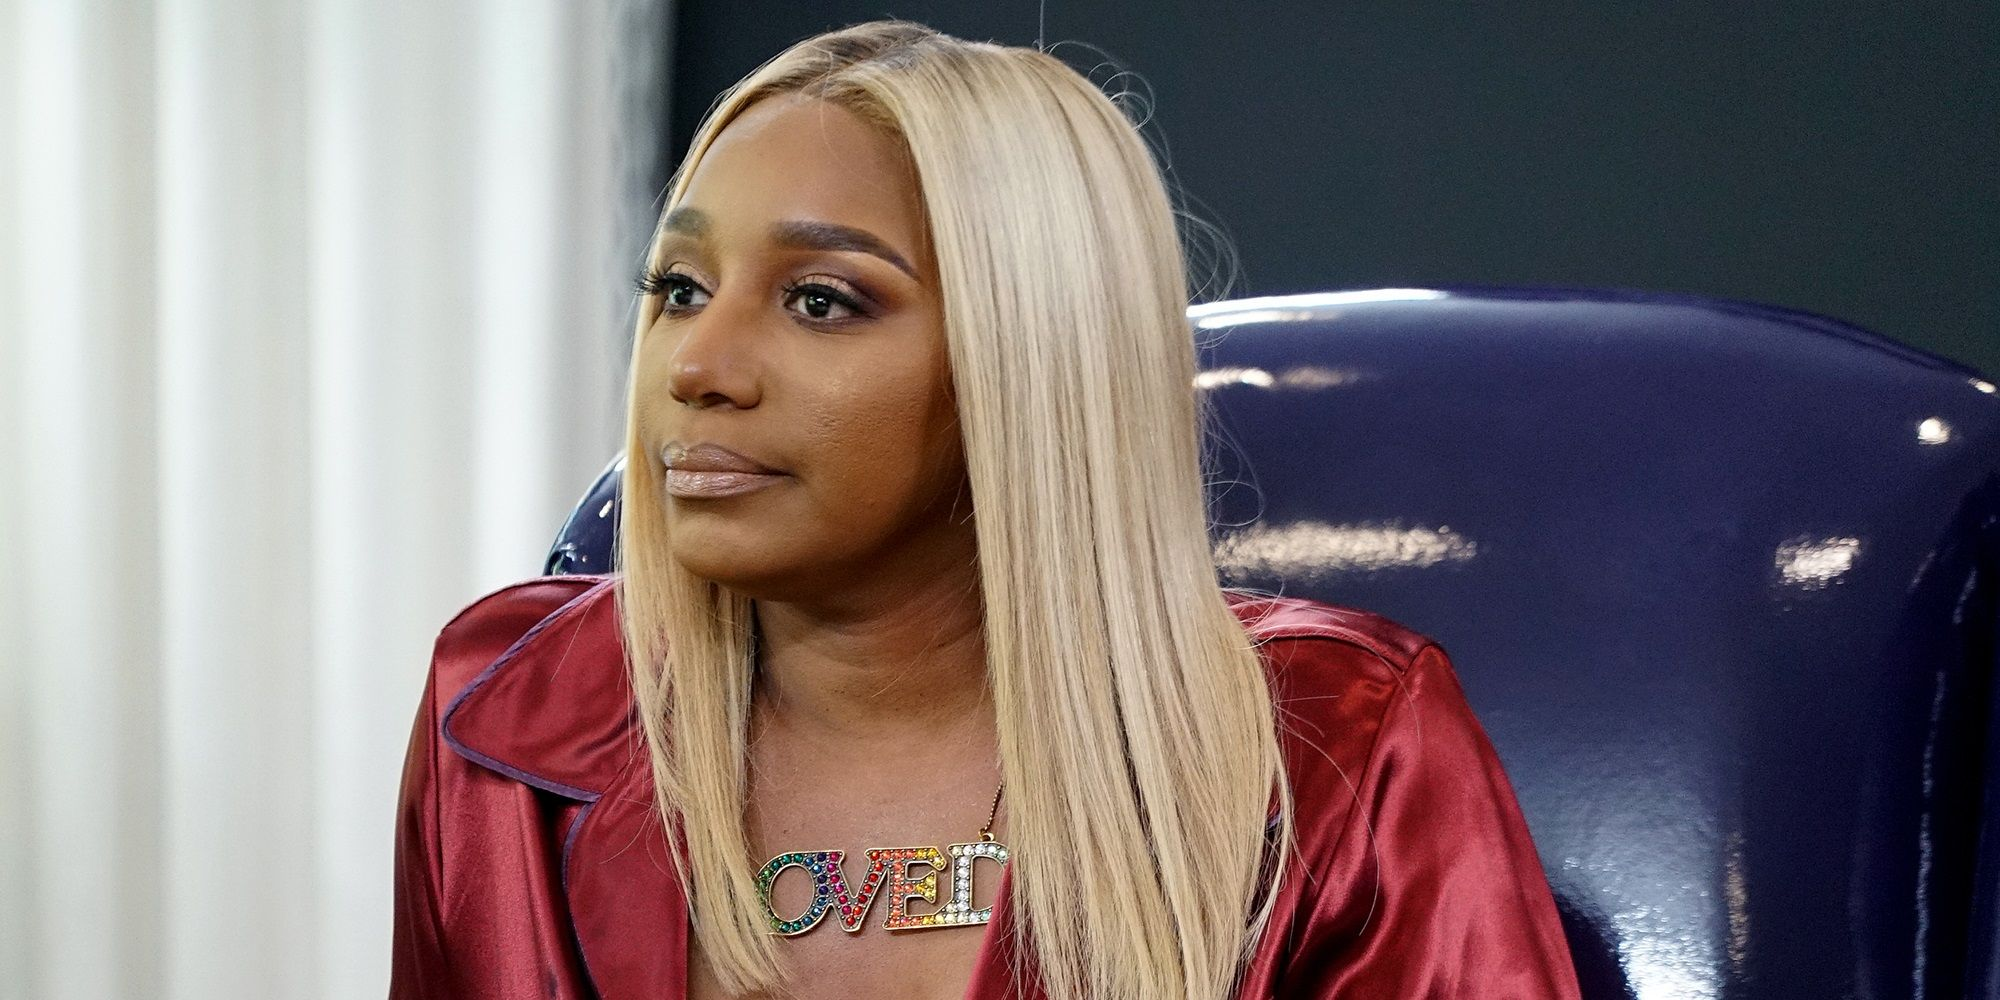 NeNe Leakes Talks About Racist Studios And Tells Fans To Believe Their Eyes